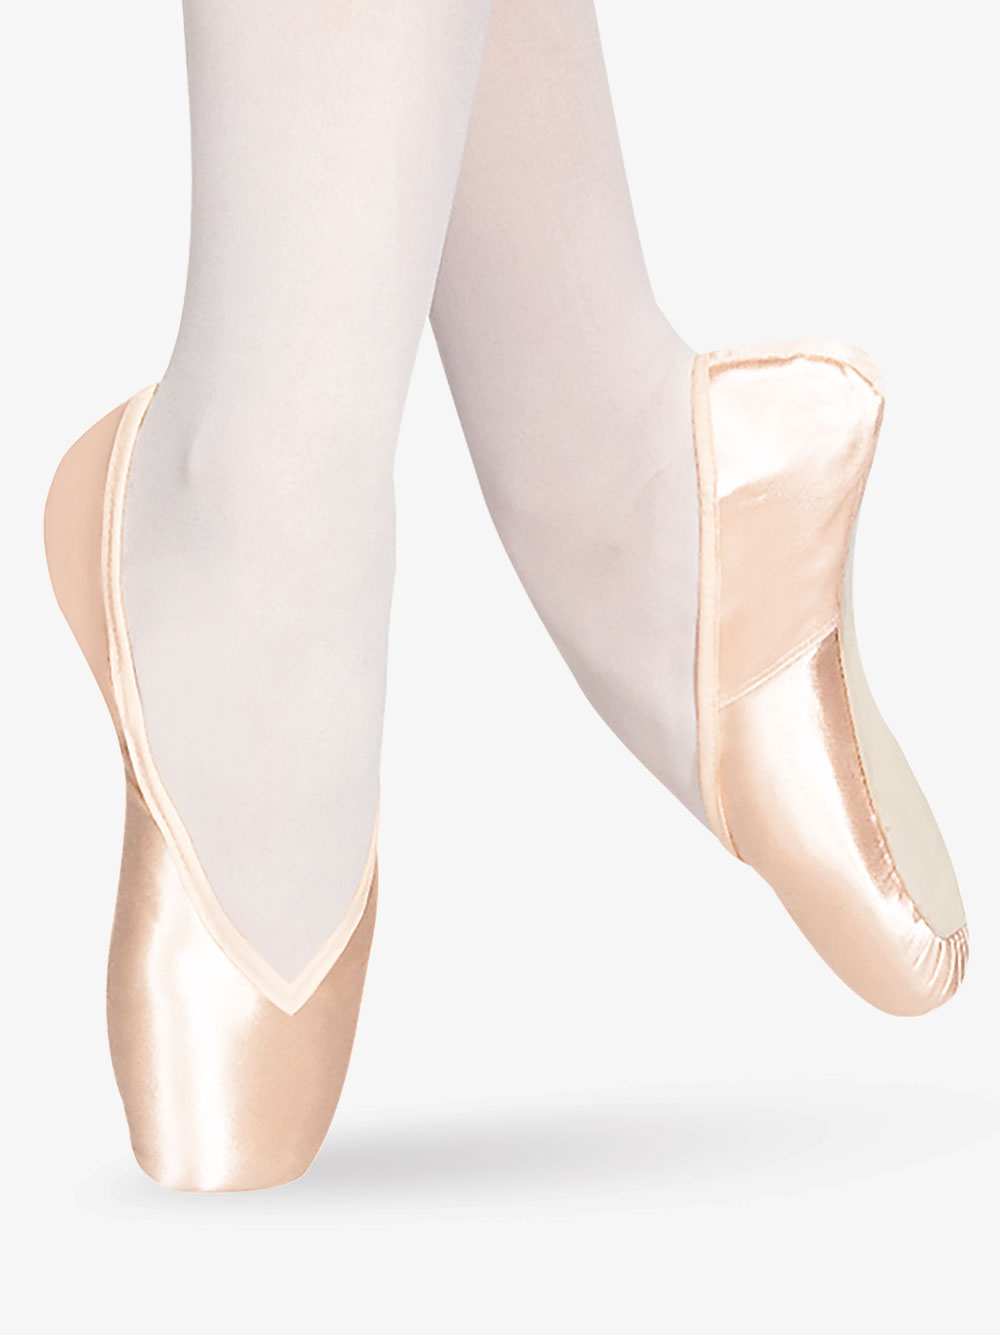 5D cut vamp Freed Studio Professional S pointe shoes